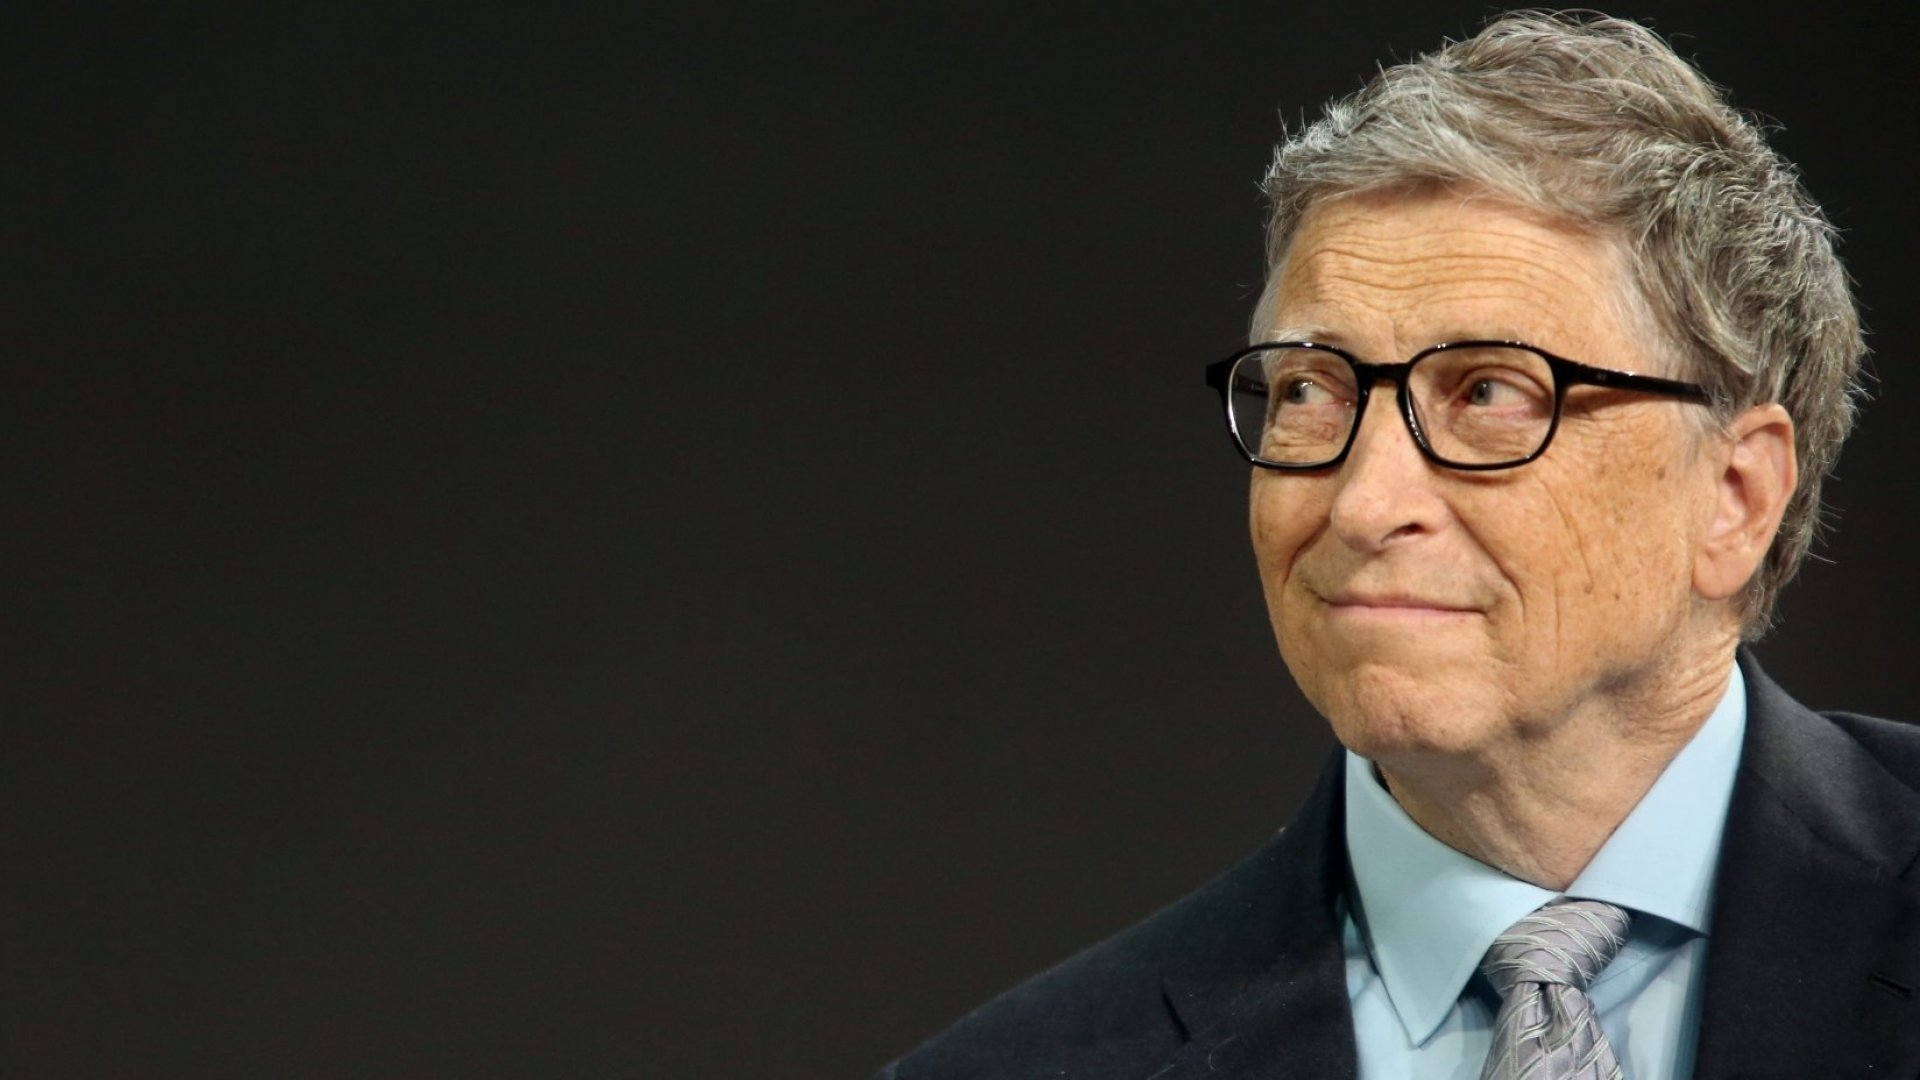 Bill Gates Kicked This One Common Bad Habit (And Now He's a Billionaire)--Here's How You Can Kick It, Too